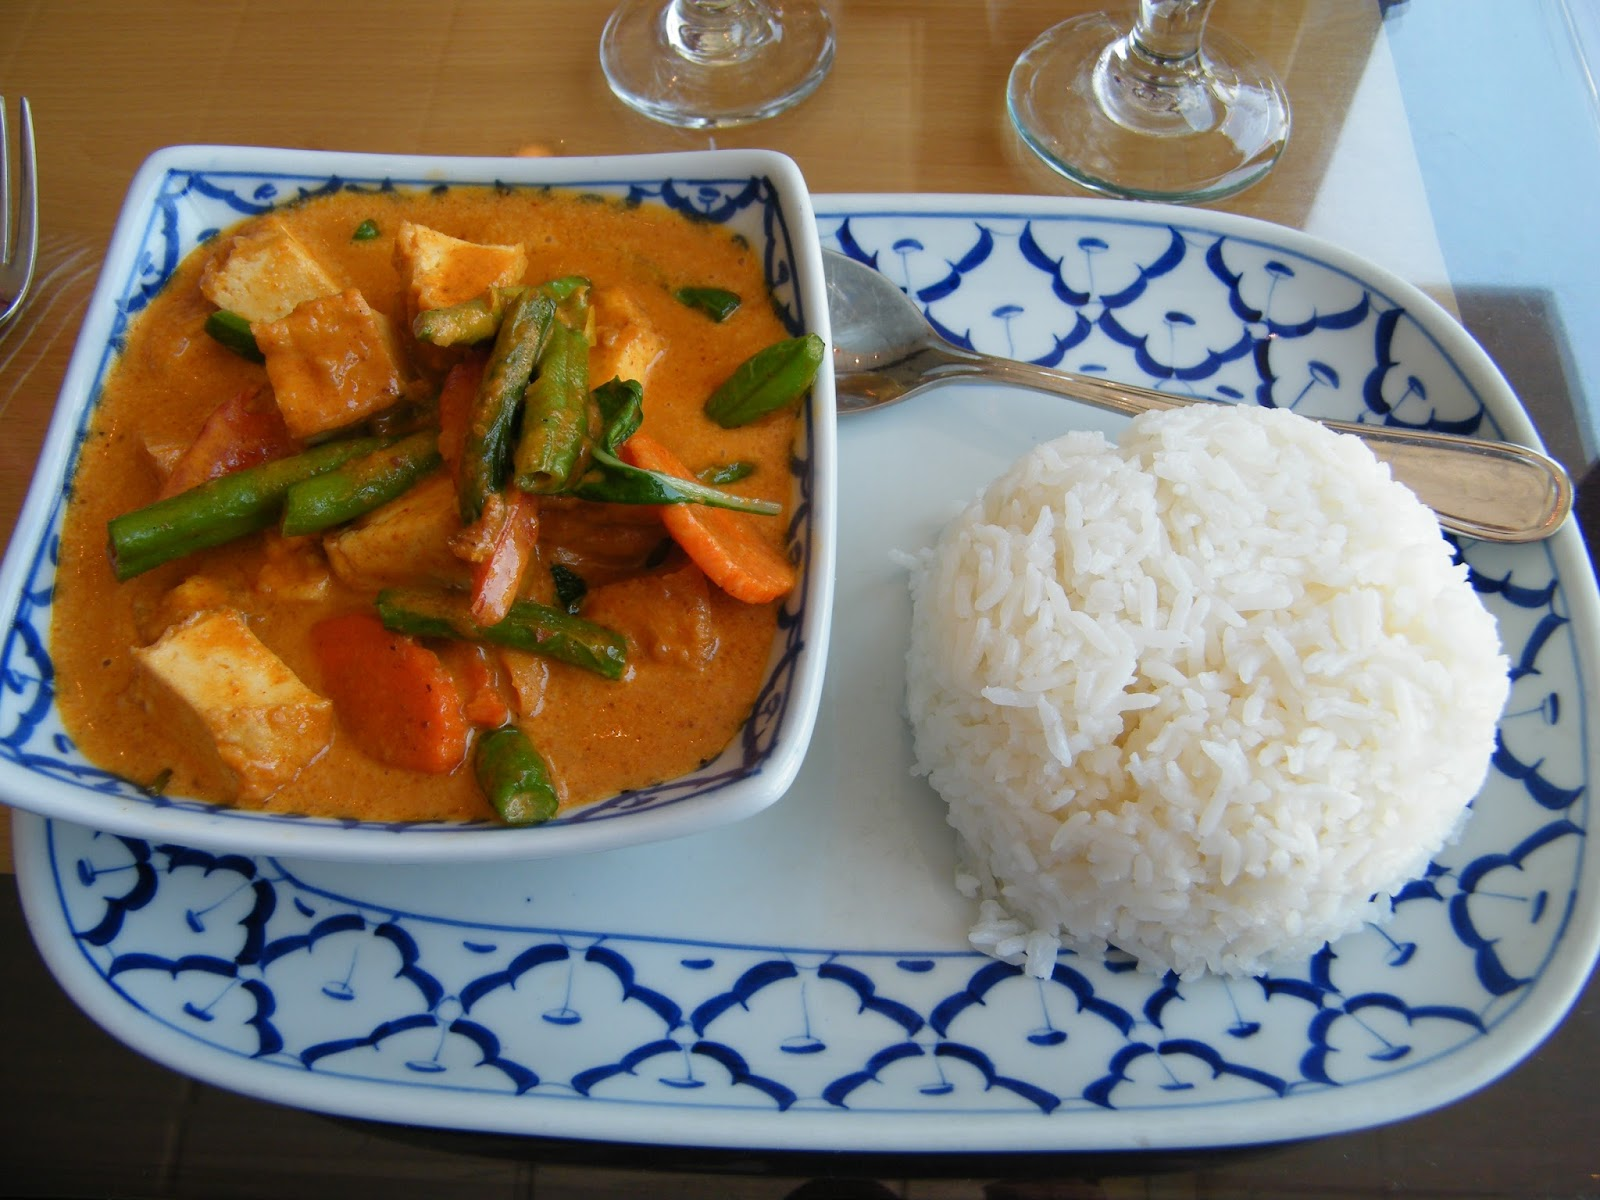 Sacramento Certainly Seems To Have Its Share Of Thai Restaurants Everywhere I Turn A New Restaurant Magically Ears Expect Try Out Several